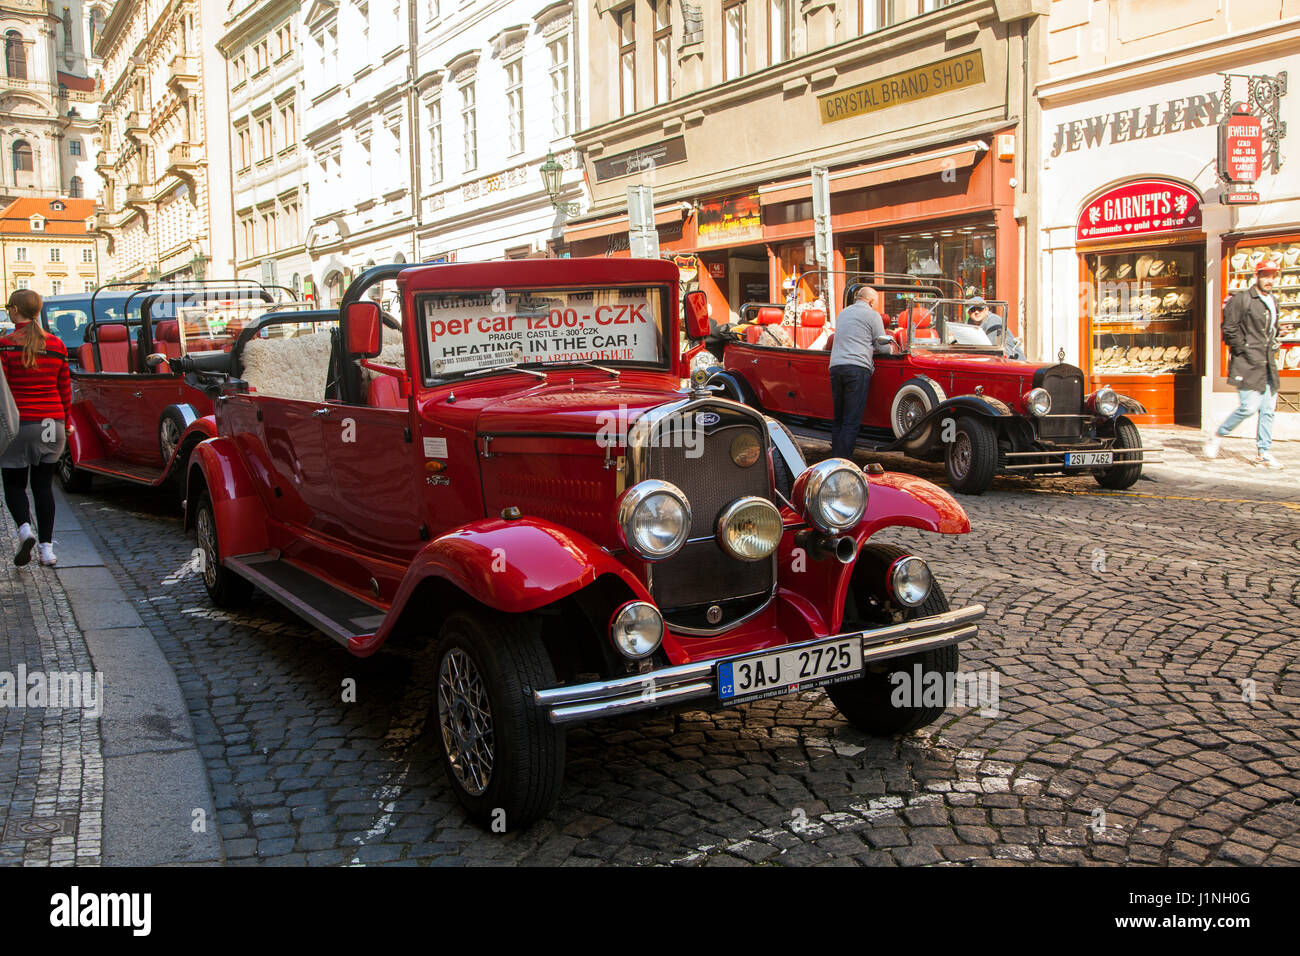 Classic Car Tours Stock Photos & Classic Car Tours Stock Images - Alamy